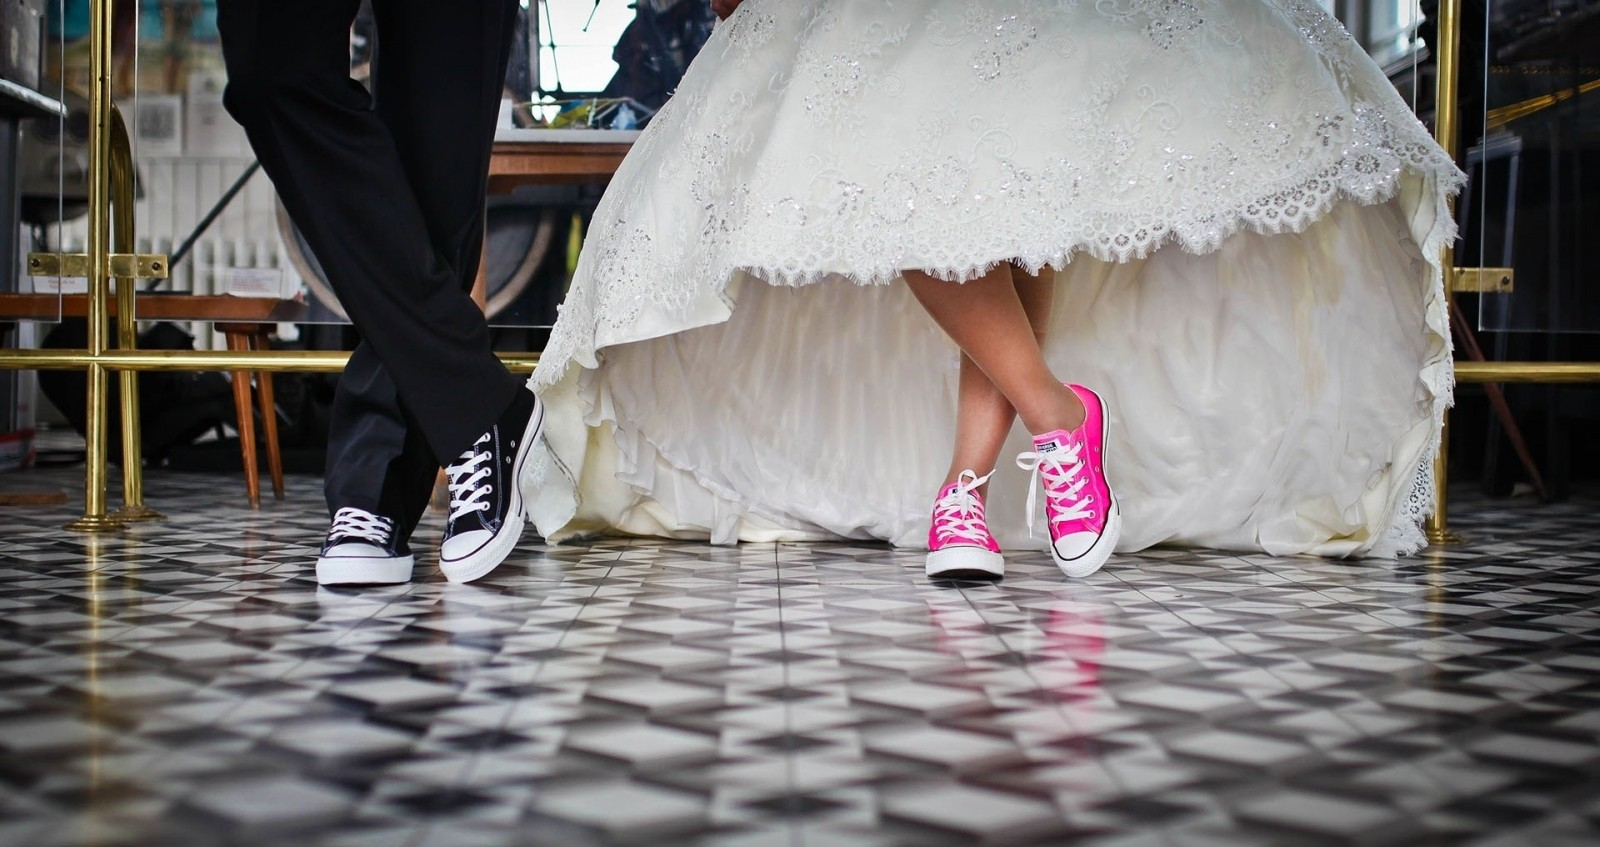 bridal-son-in-law-marriage-wedding-shoes